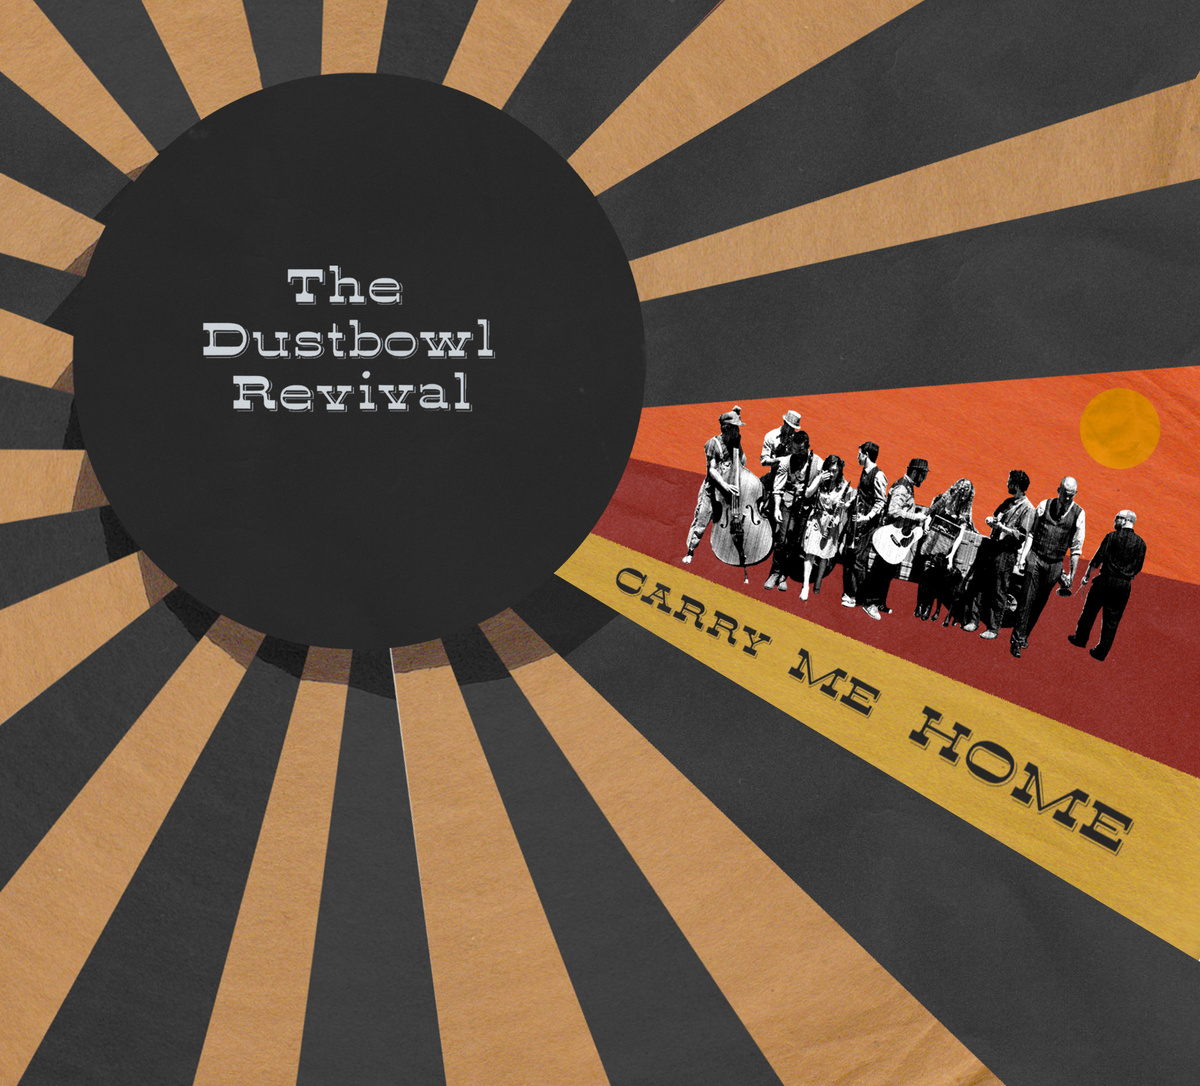 The Dustbowl Revival Carry Me Home 2013